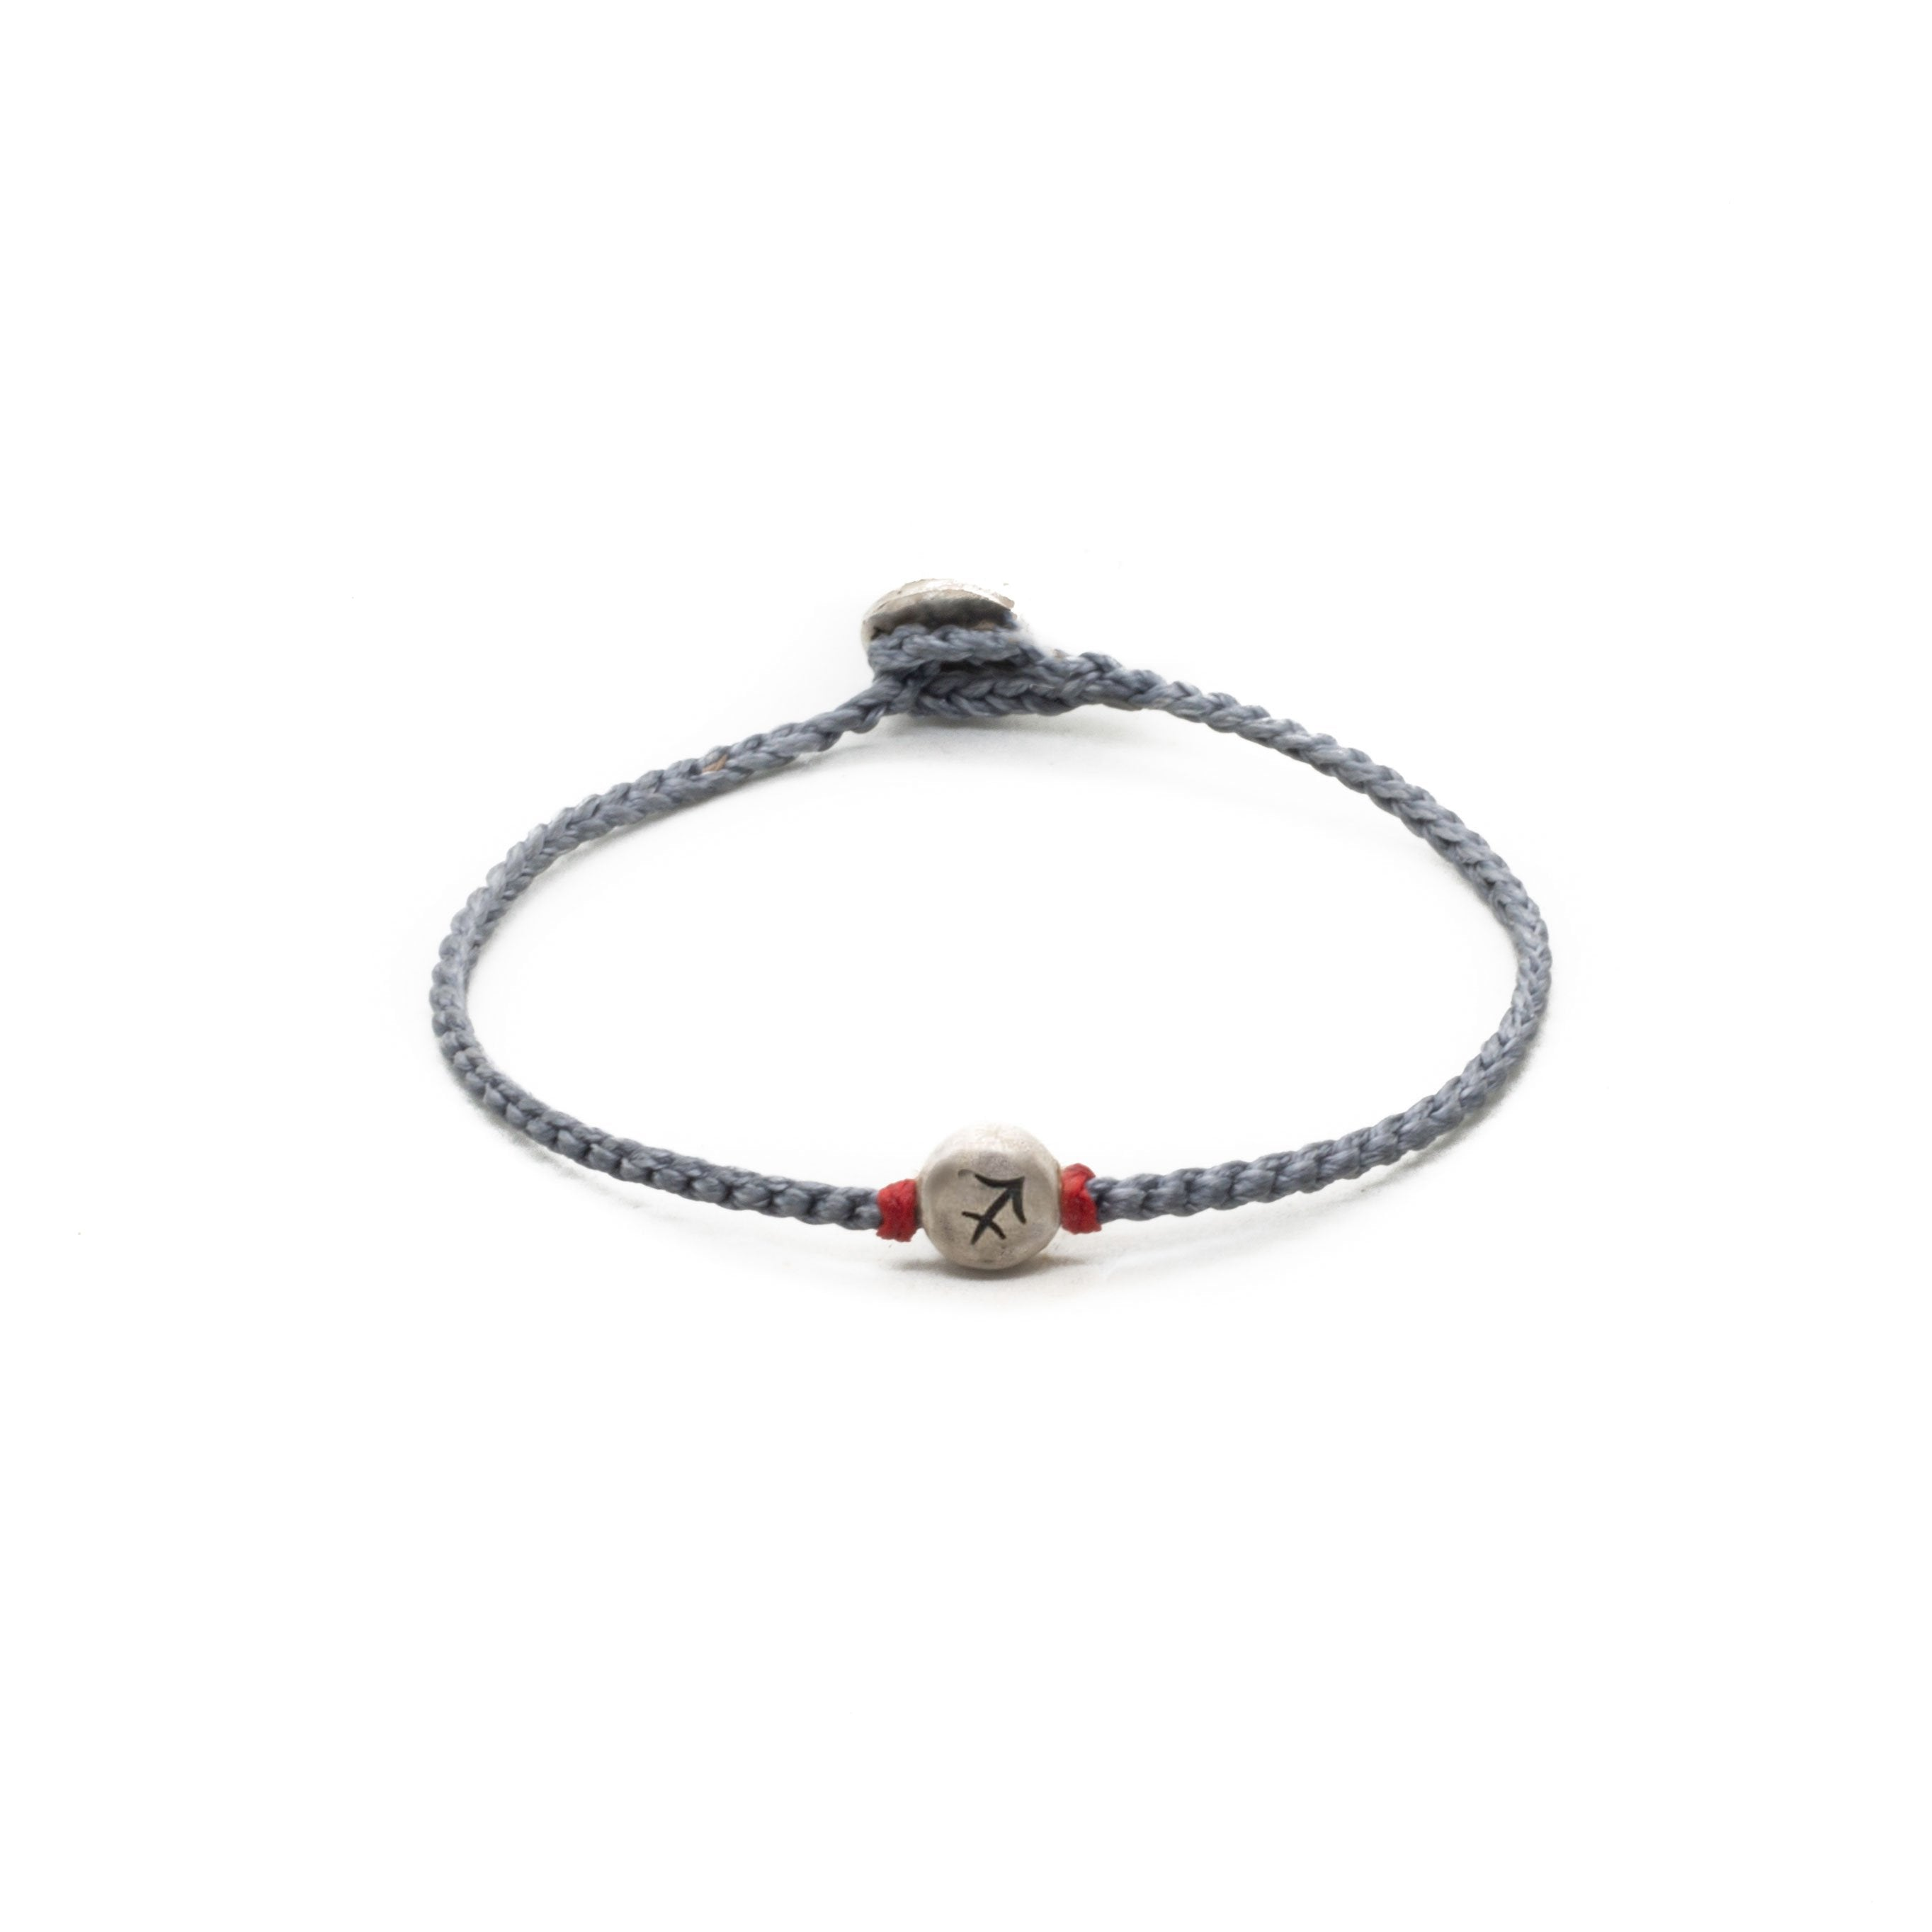 Silver Sagittarius zodiac sign bracelet with grey hand braided chain.